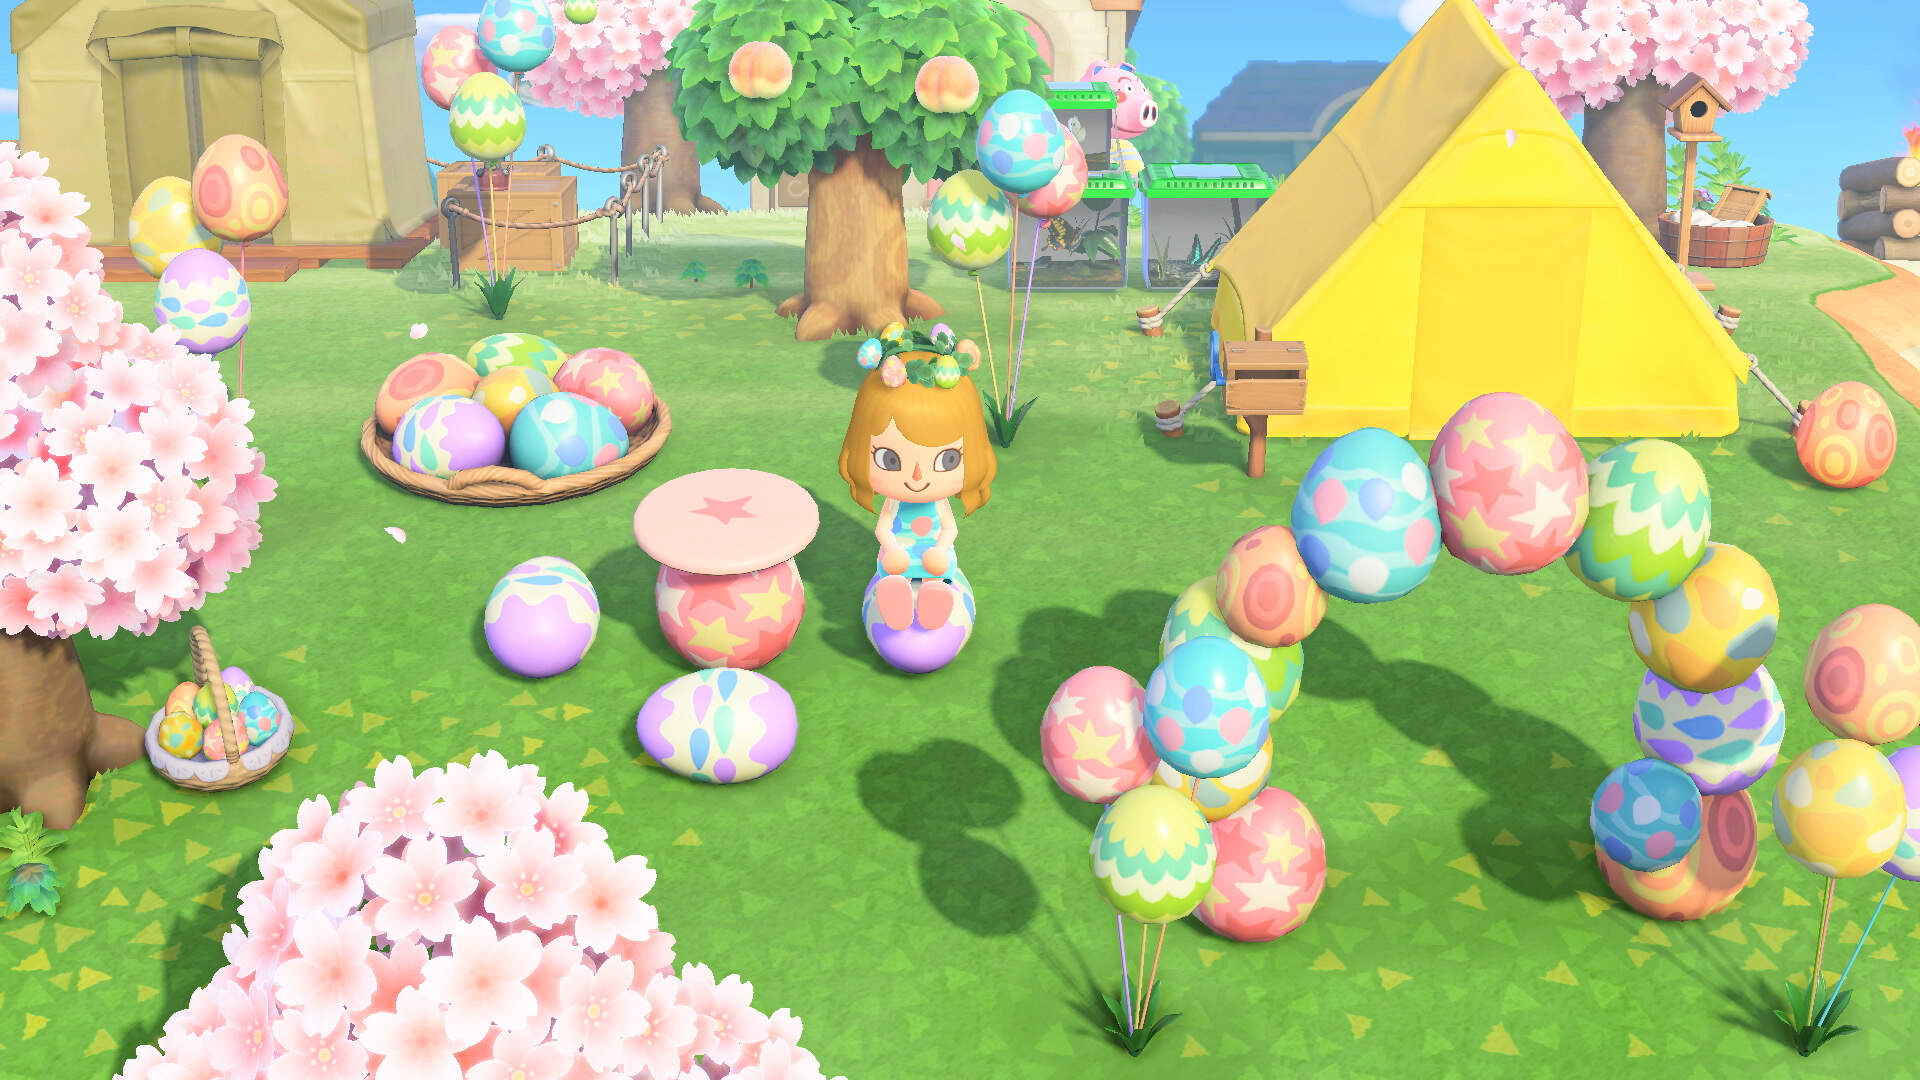 Animal Crossing New Horizons Players Can Skip Ahead To Cherry Blossoms After The New Patch Usgamer